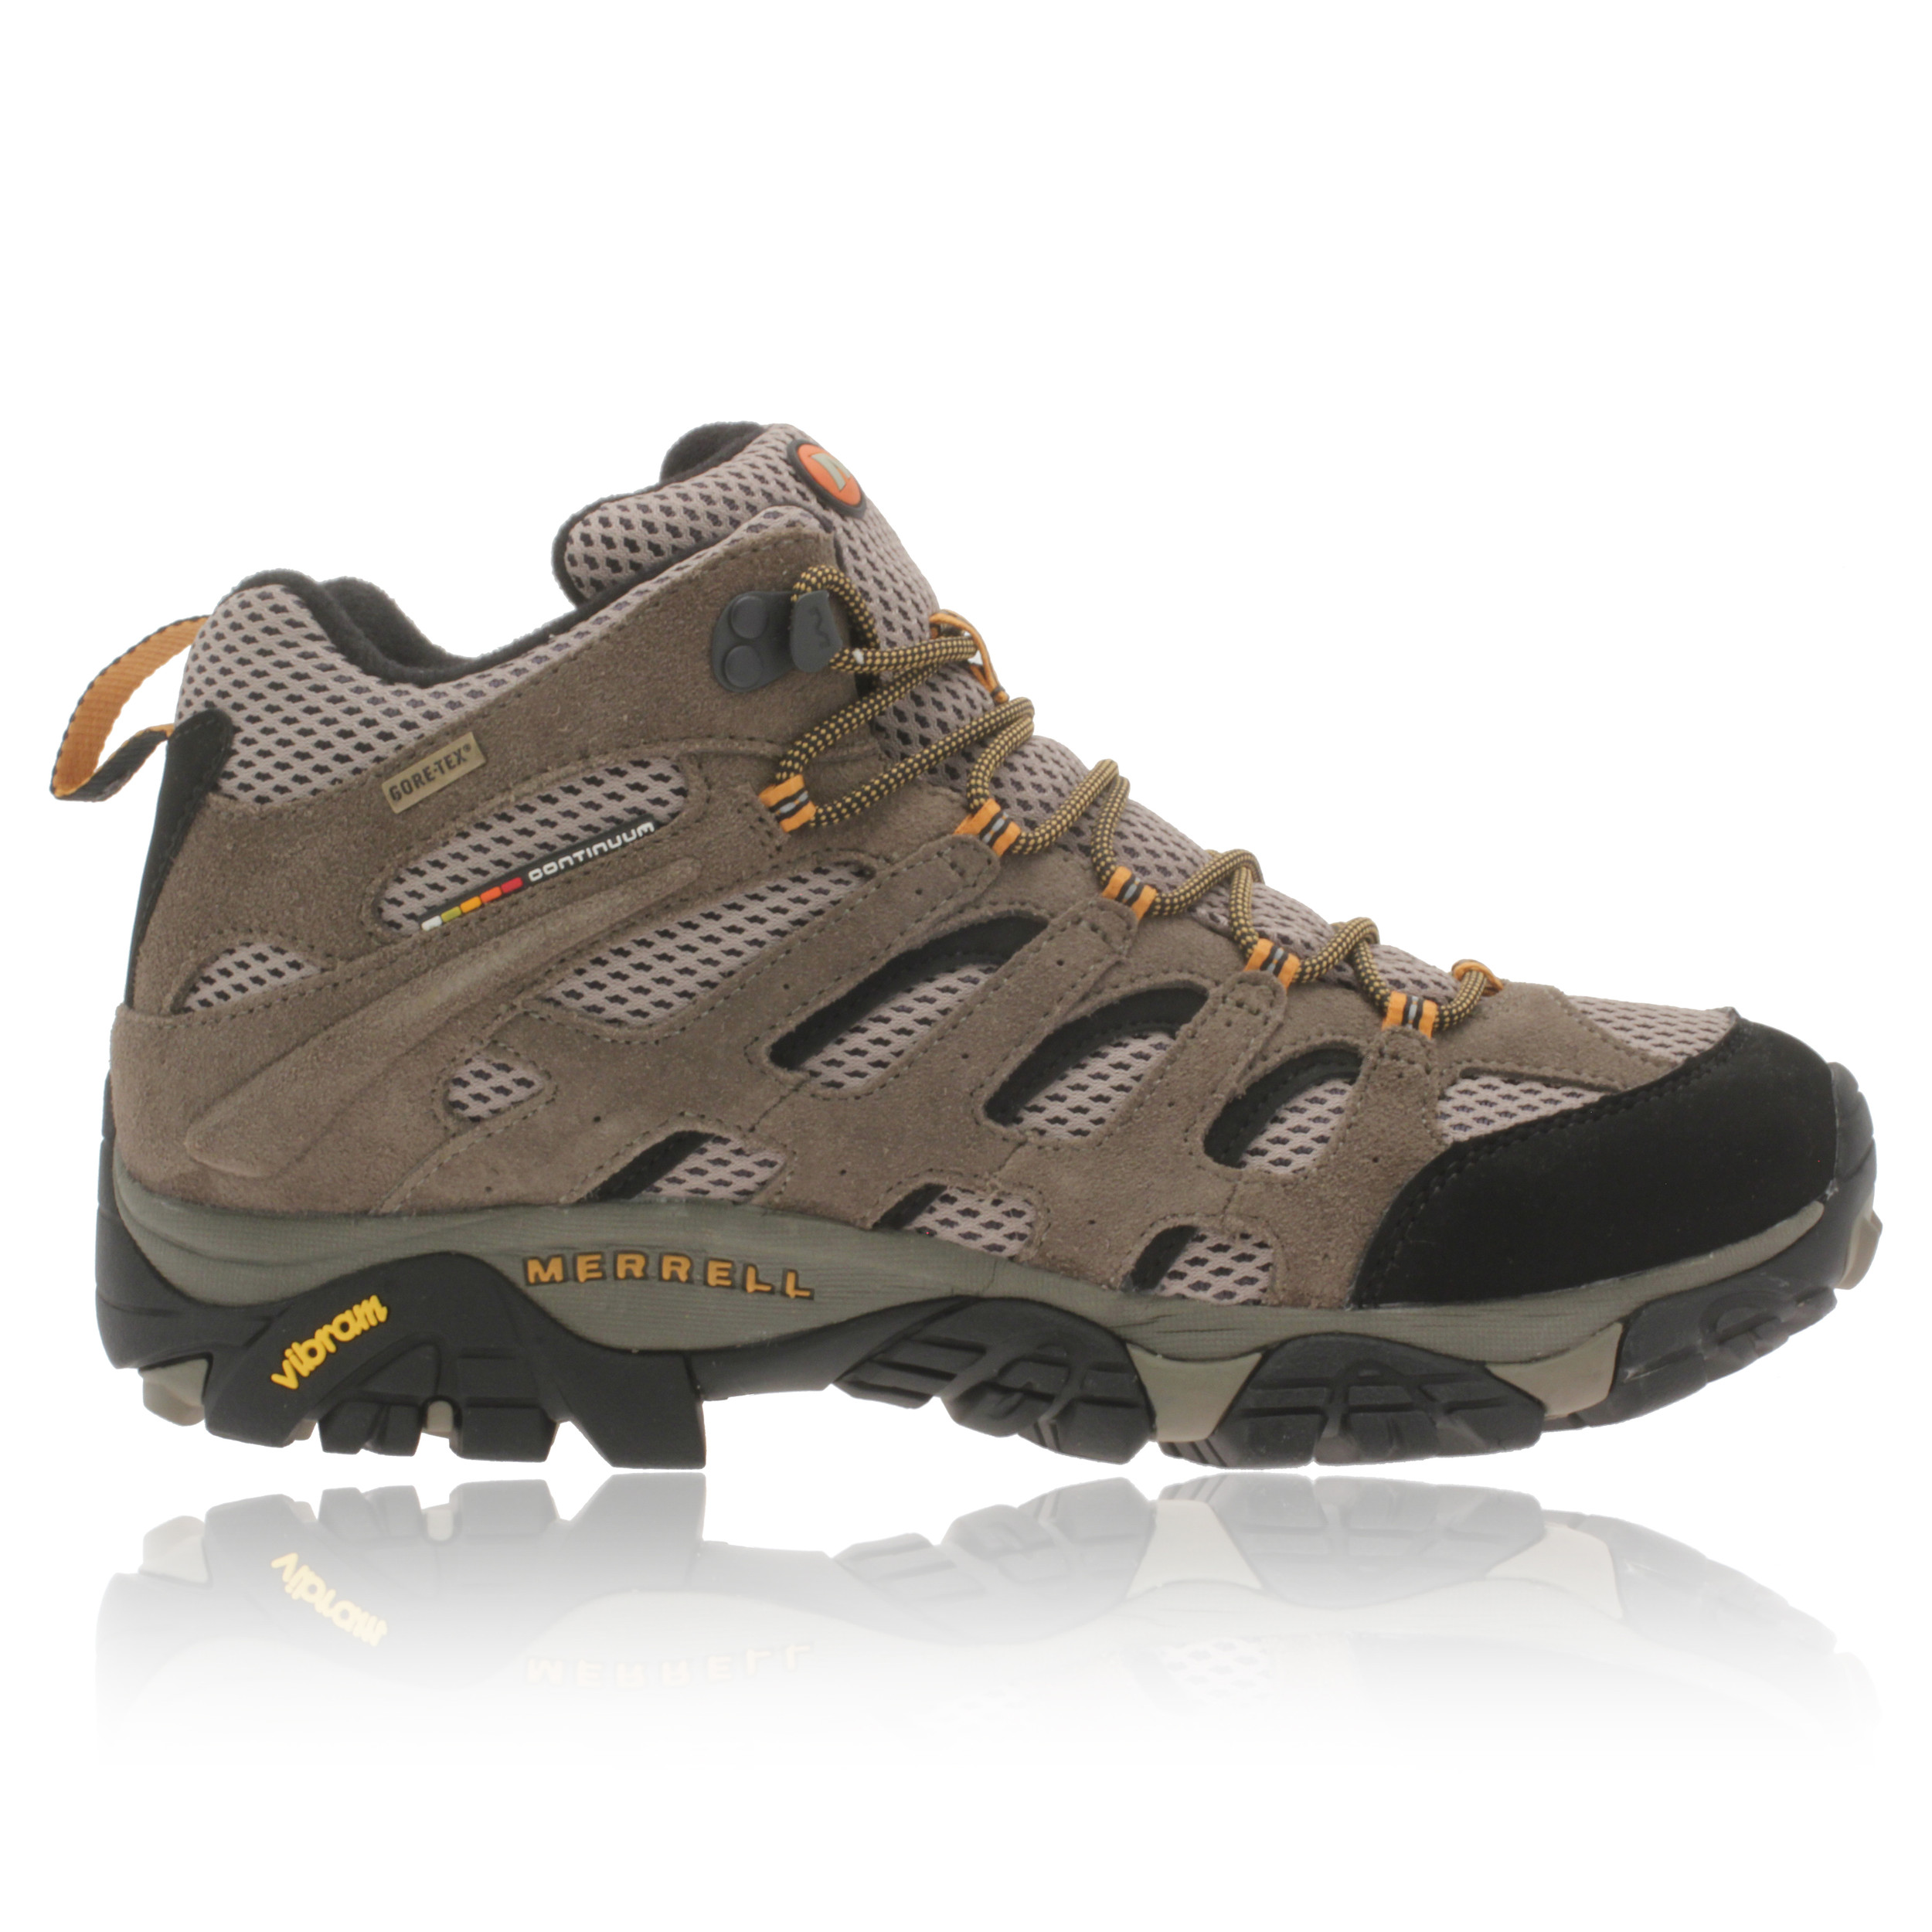 Walking Shoes With Gortex